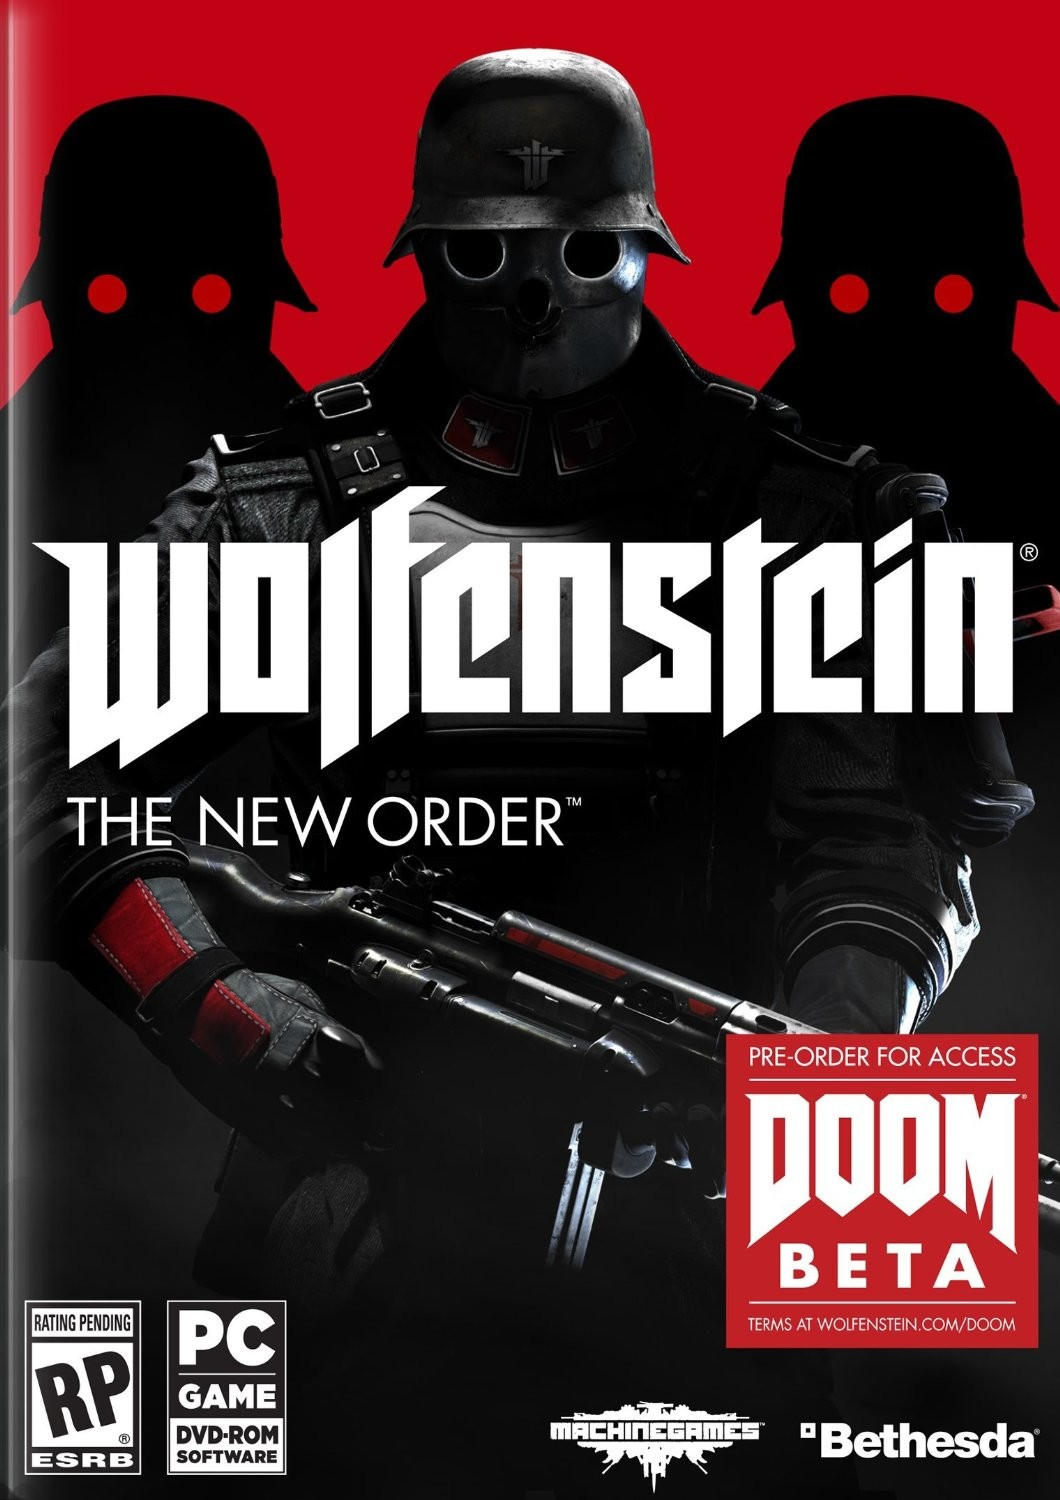 Wolfenstein: The New Order 德军总部:新秩序